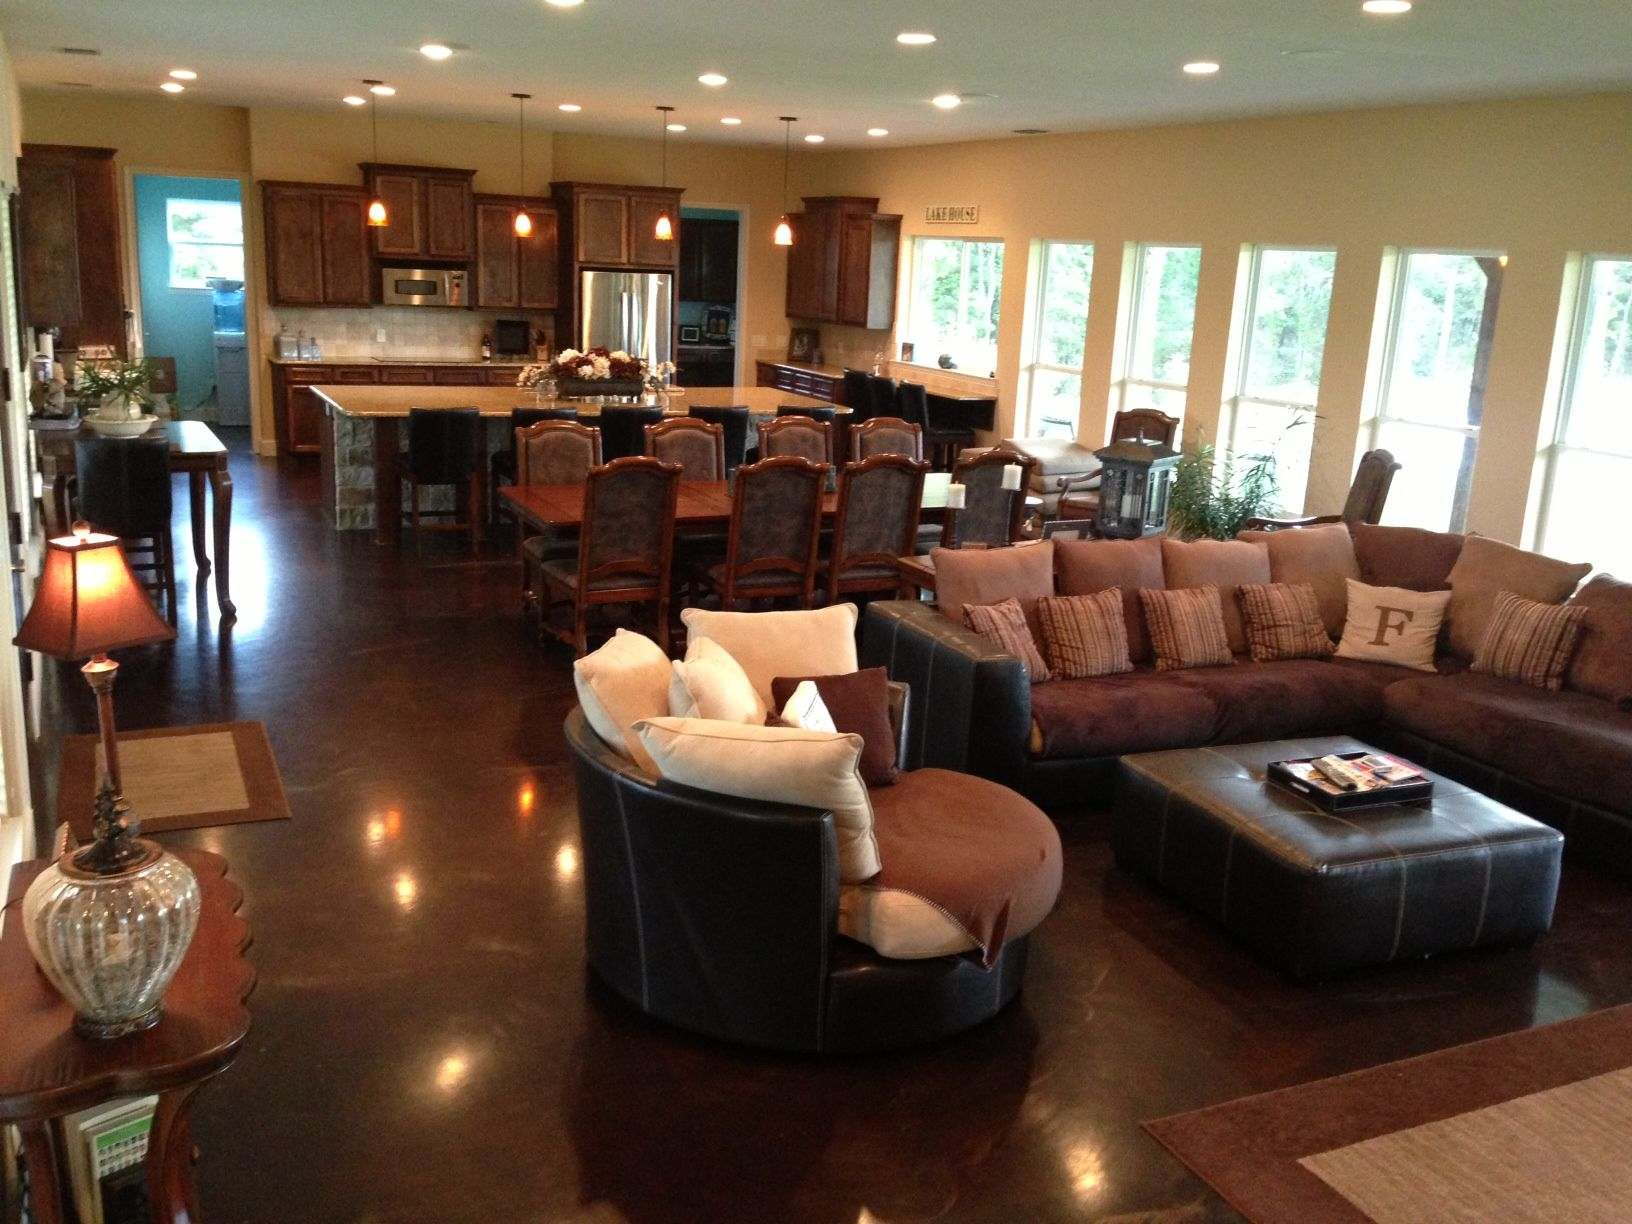 Pin By Sherril Frank On Favorite Places Spaces Open Concept Kitchen Living Room Open Concept Living Room Living Room Floor Plans